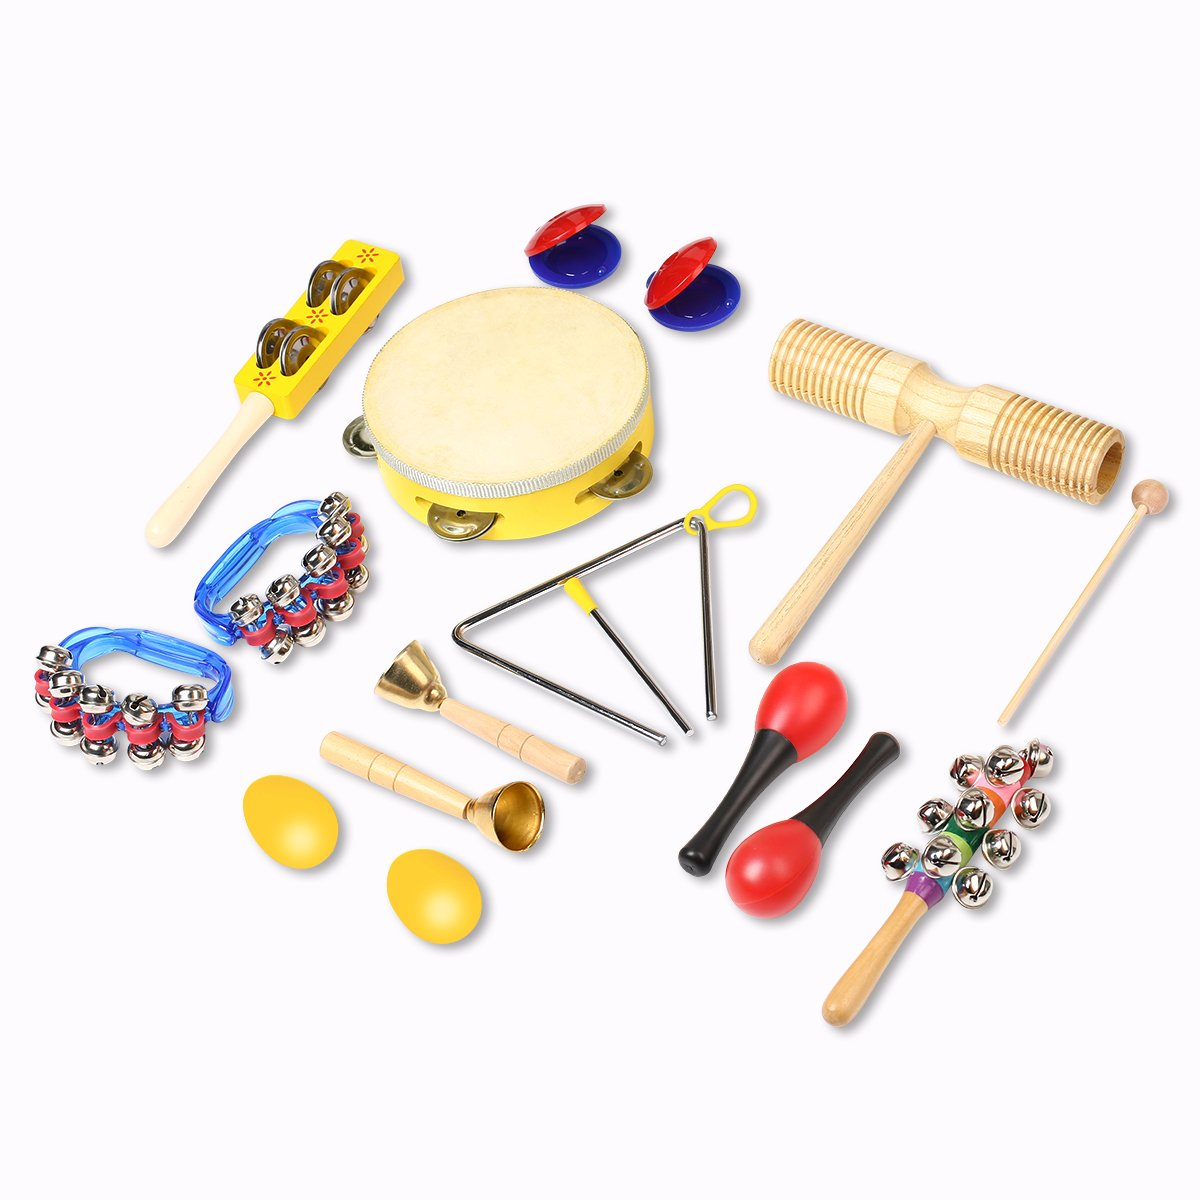 Musical Instrument Toys for Kids, 15PCS INKERSCOOP Toddlers Toys Set, Child Percussion Set Preschool Educational Learning Musical Toys Wooden Baby Toys Musical Instruments Set for Boys and Girls